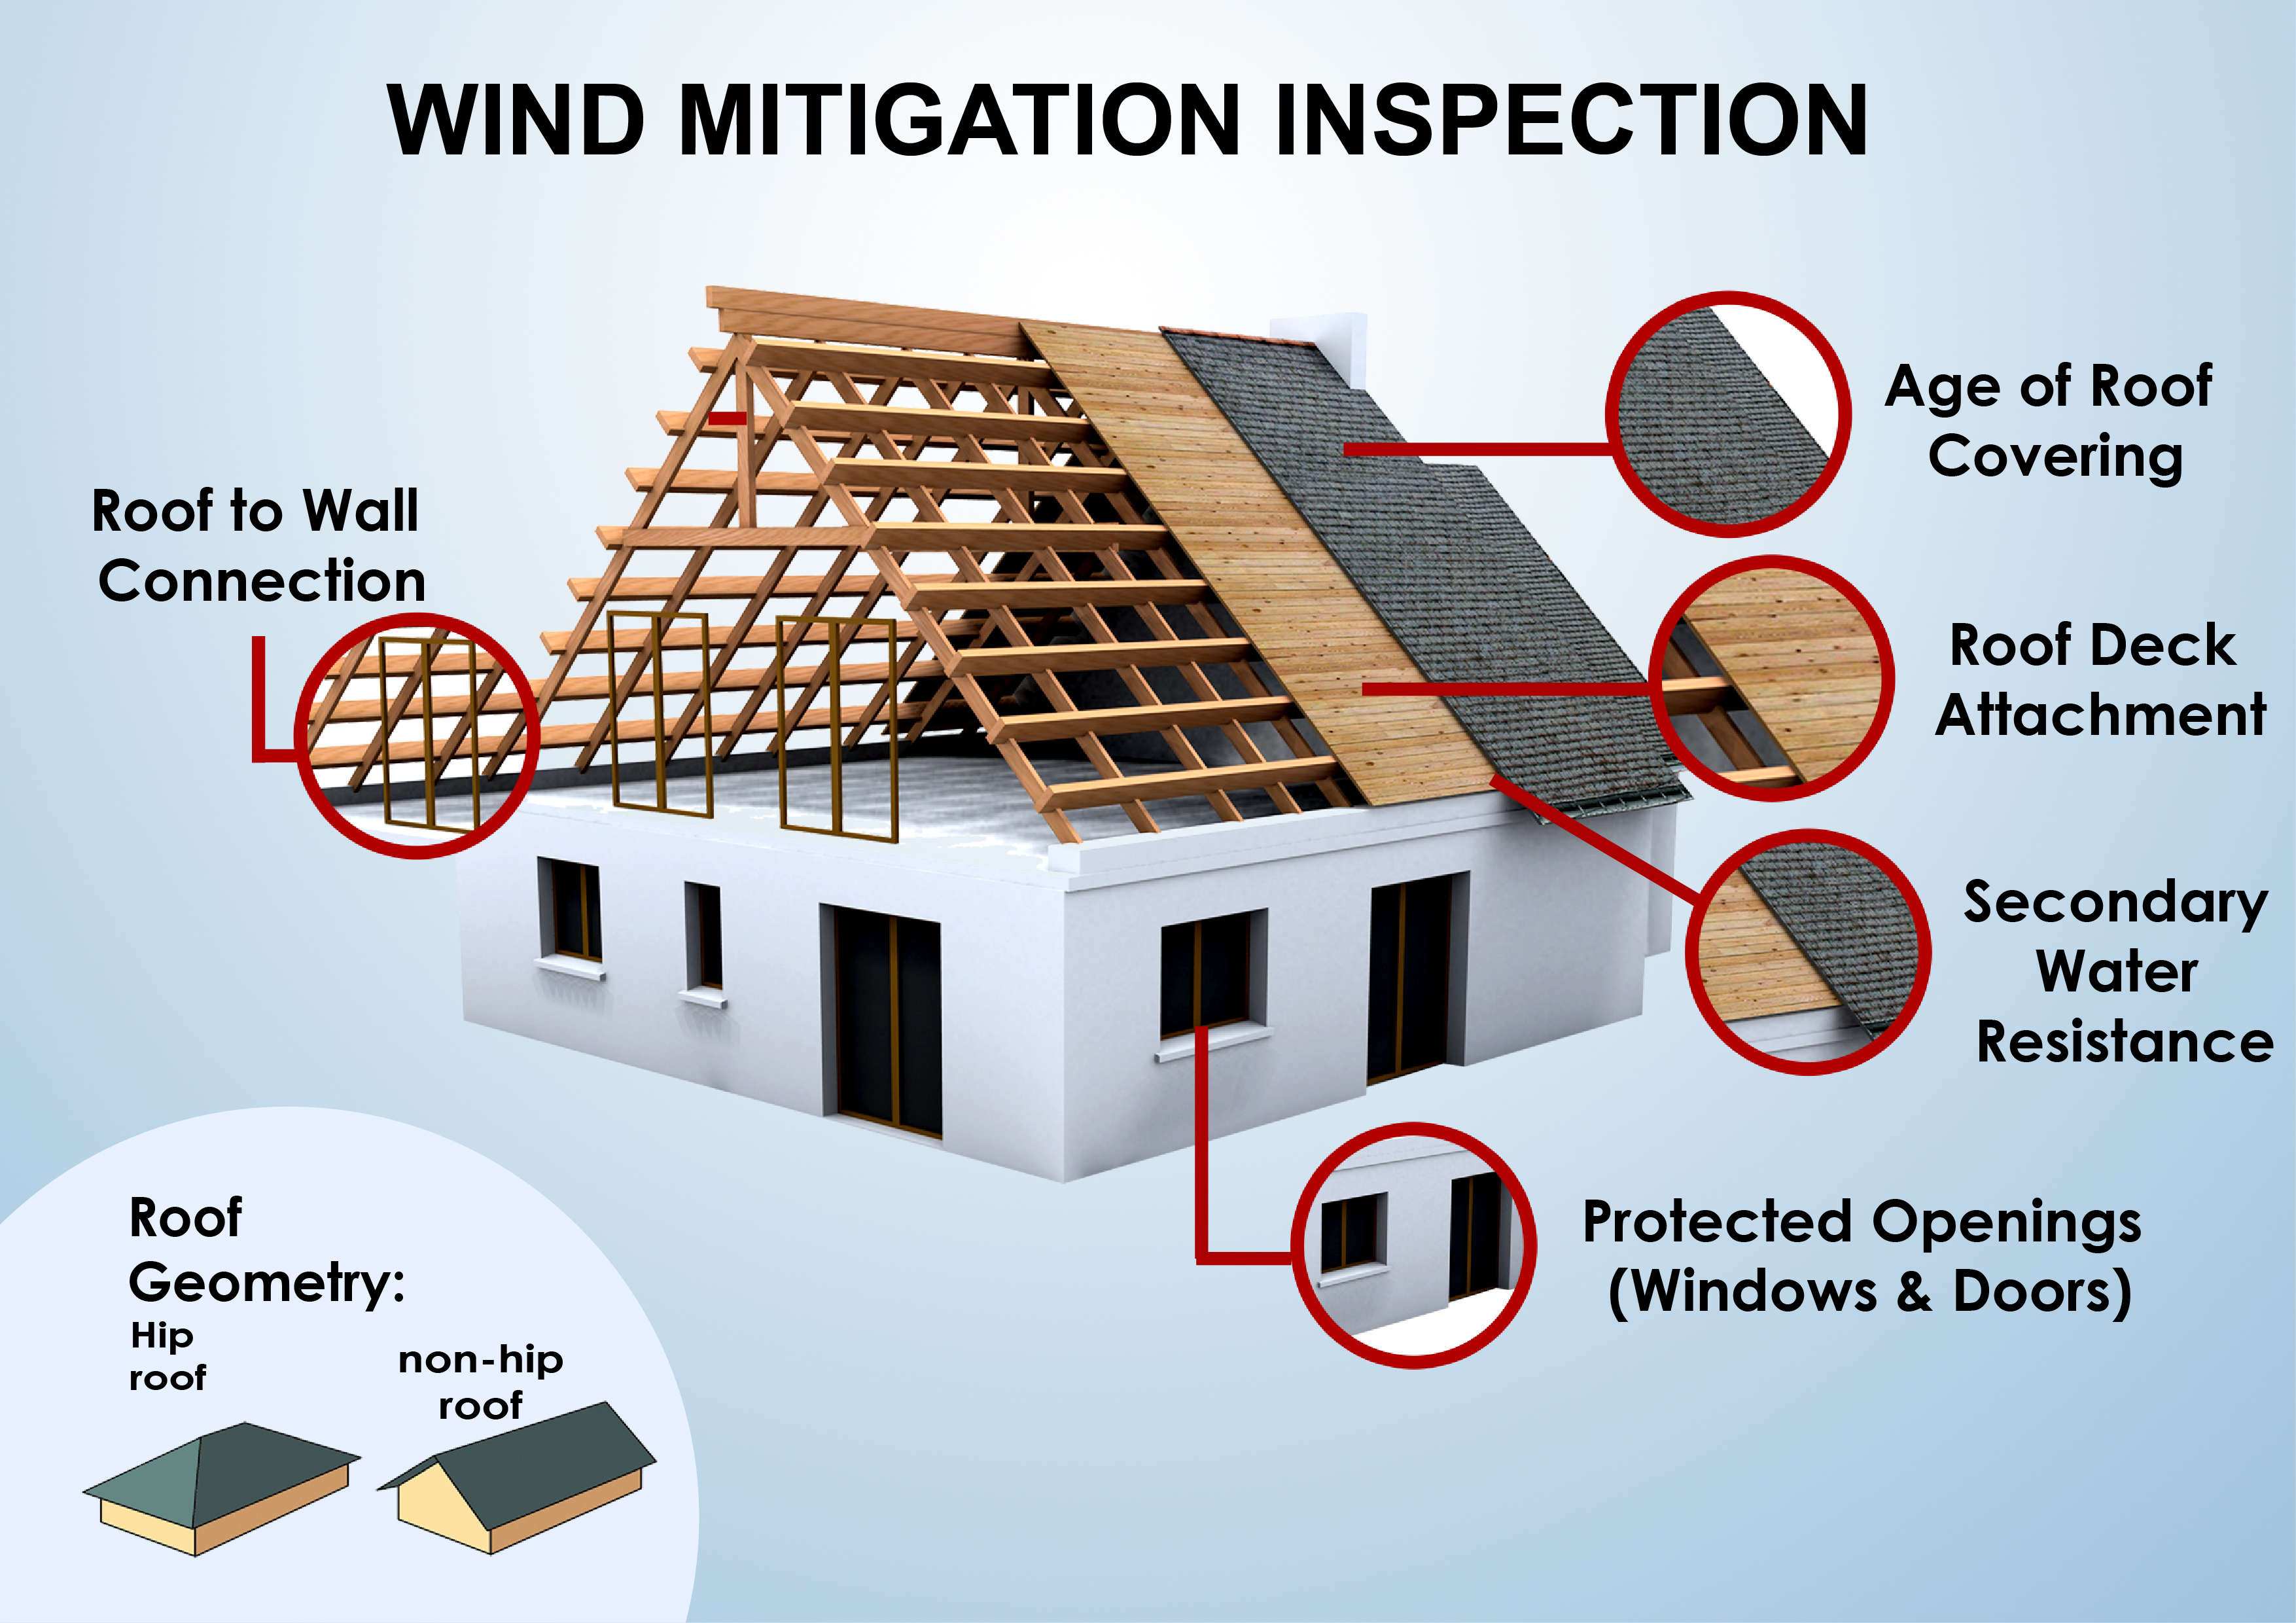 Tallahassee wind mitigation inspection focus areas